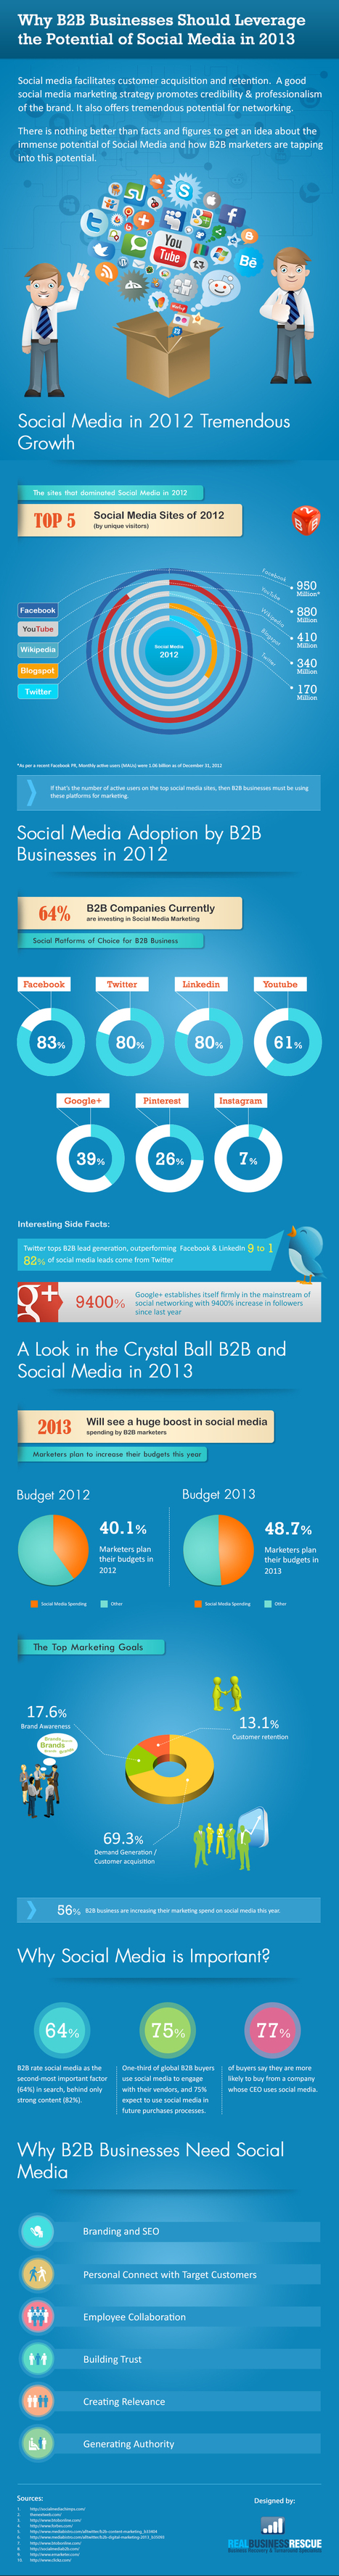 Why B2B Brands Must Invest In Social Media In 2013 [INFOGRAPHIC] | Continuing education | Scoop.it